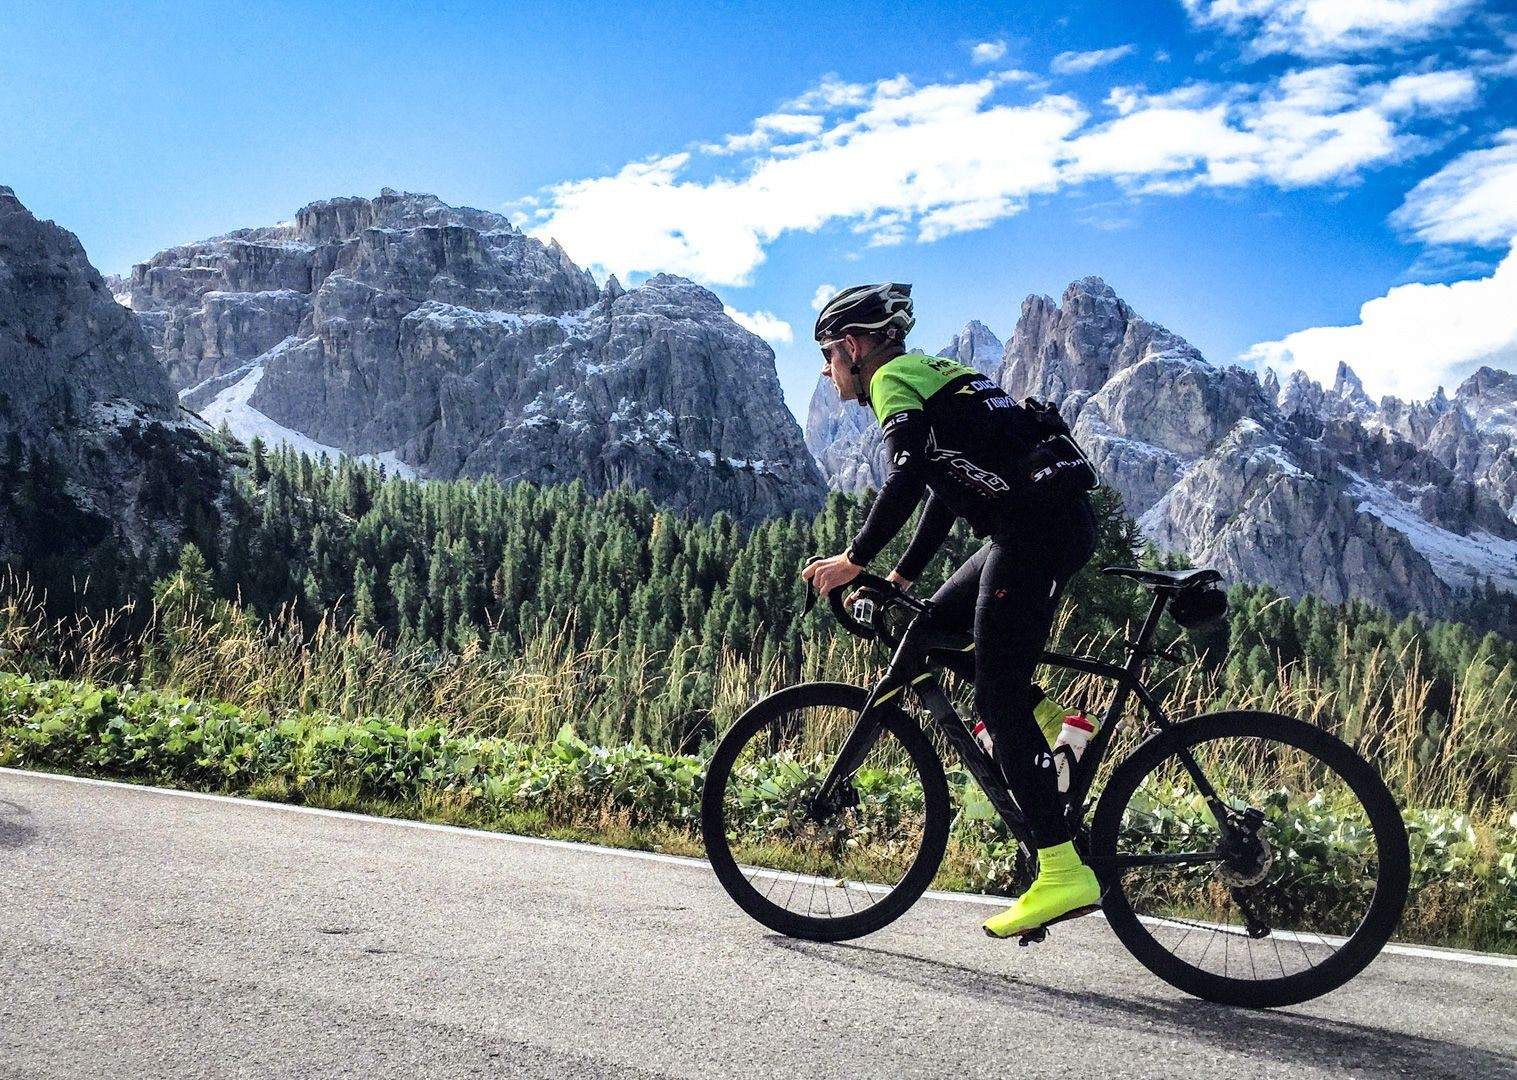 italian-dolomites-road-cycling-holiday.jpg - Italy - Alps and Dolomites - Giants of the Giro - Guided Road Cycling Holiday - Italia Road Cycling